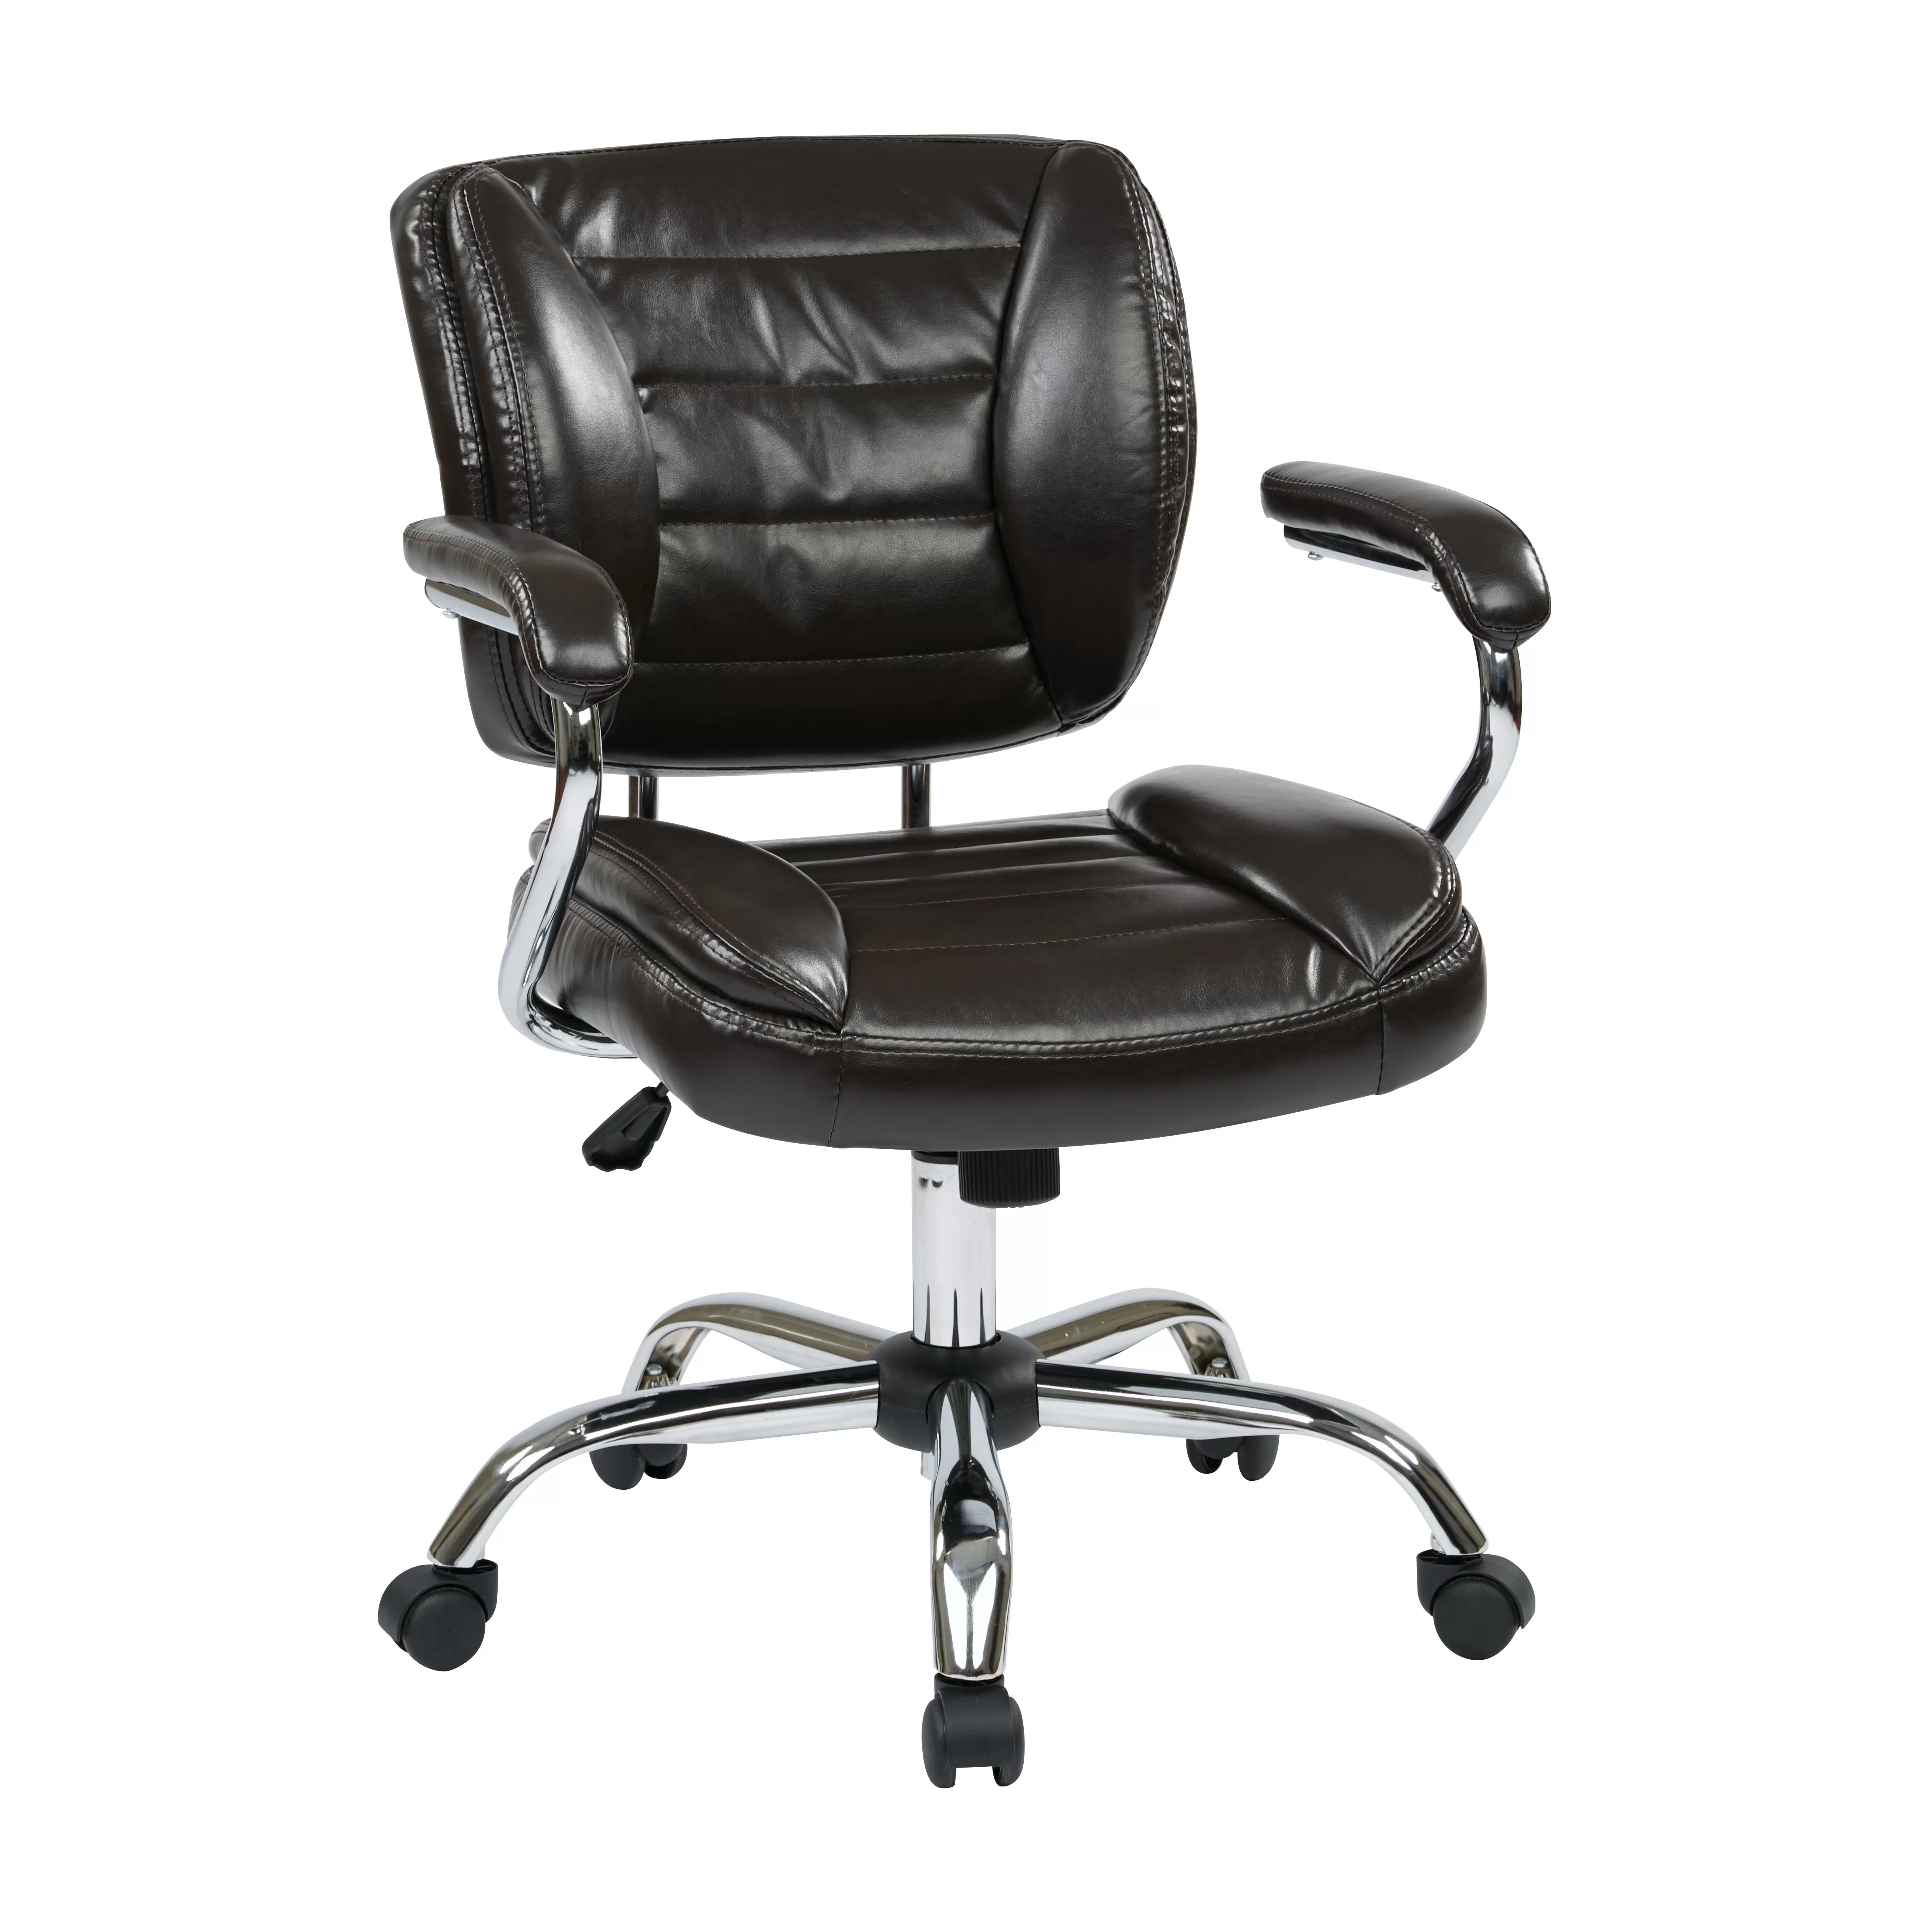 cream office chair faux leather personalized beach chairs for adults star adjustable and reviews